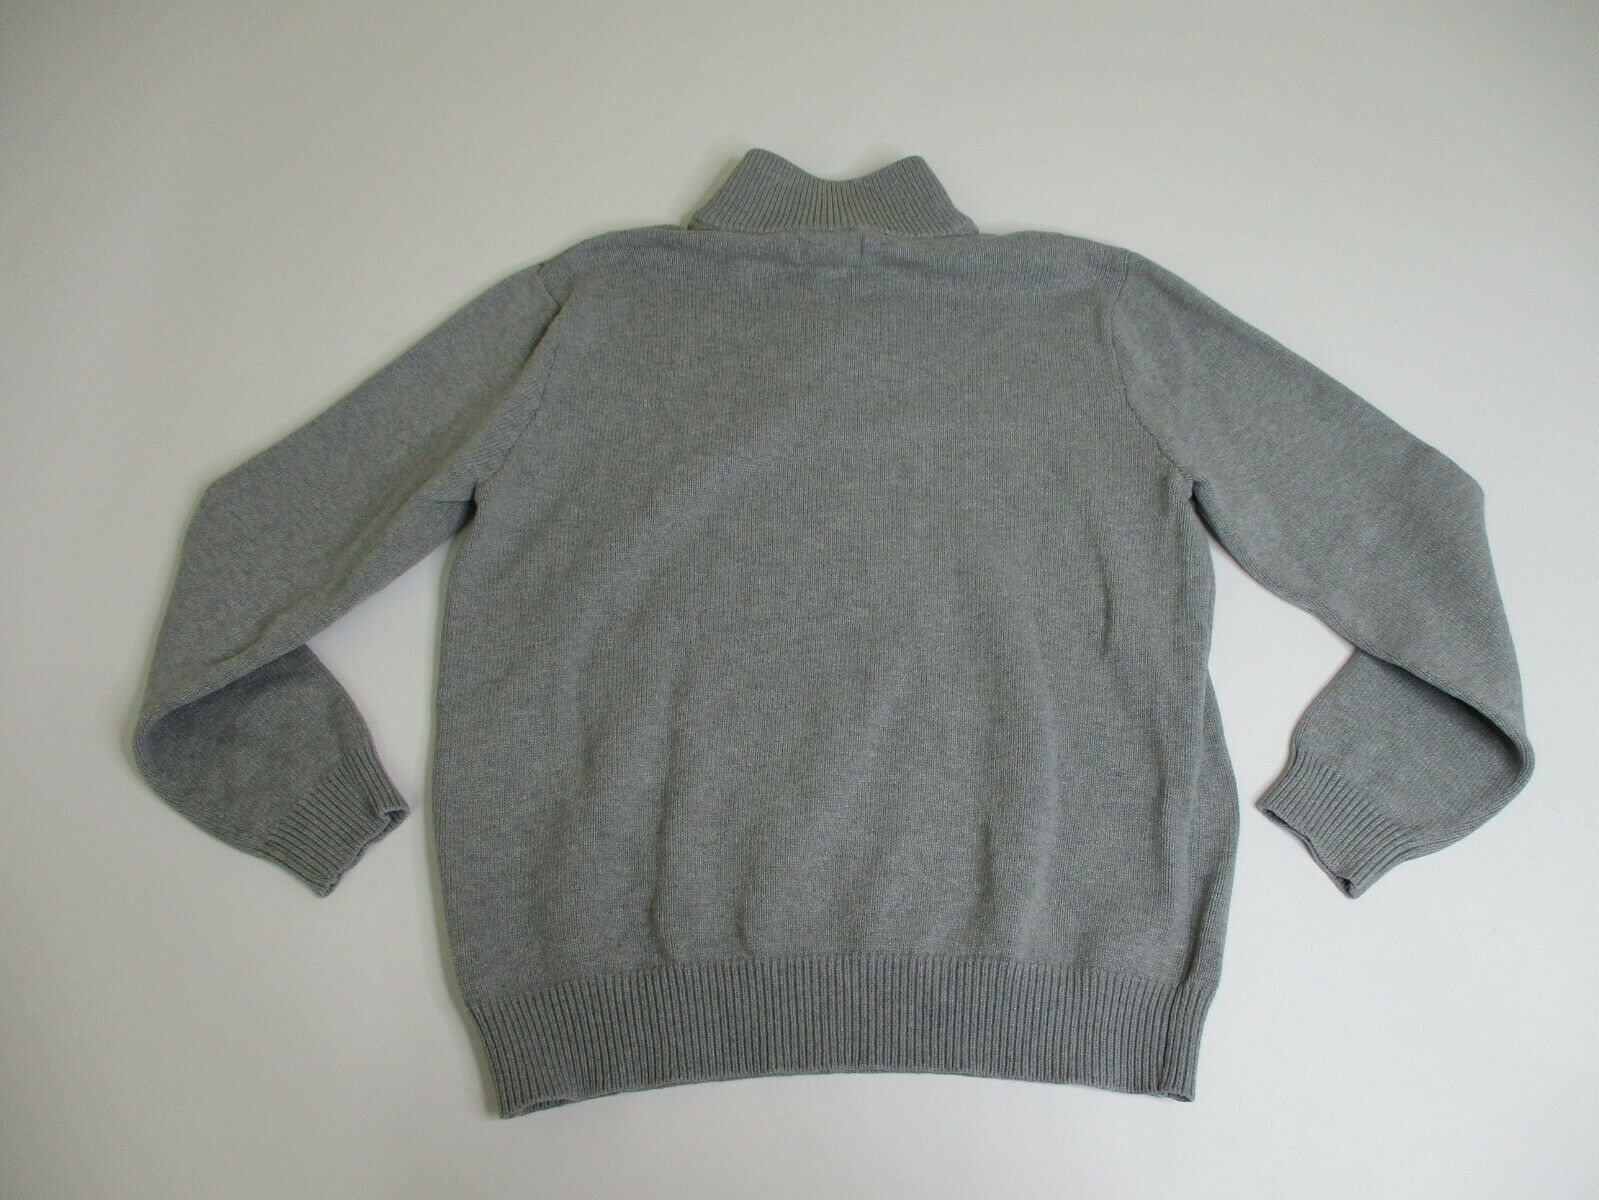 Polo Jeans Co. Pullover Sweater Men Medium 1/2 Zip Leather Pull Tab